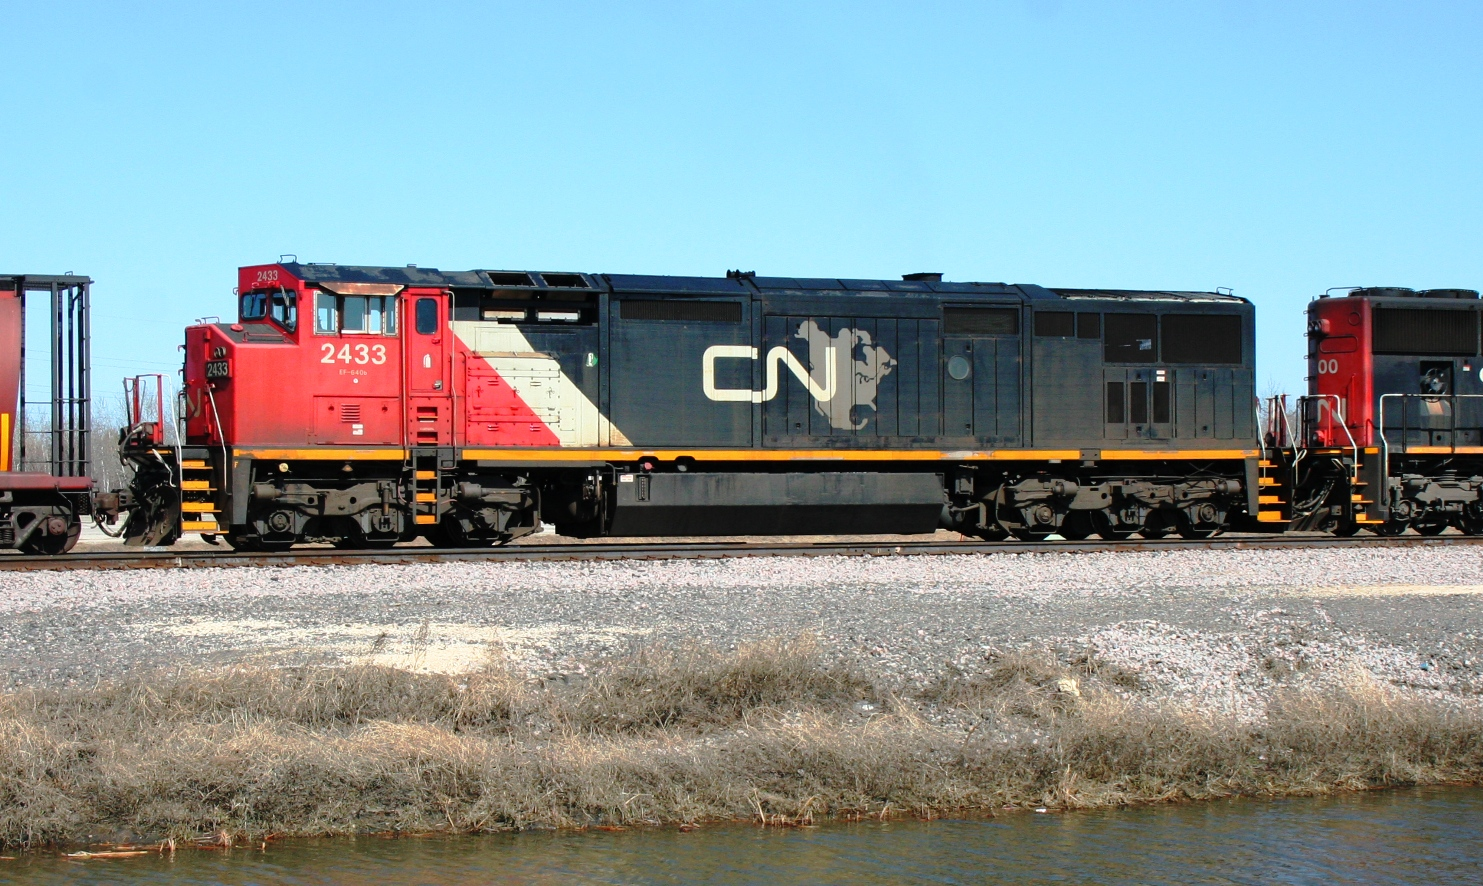 CN 2433 in Winnipeg, MB 2011/04/11 by Steve Vallis